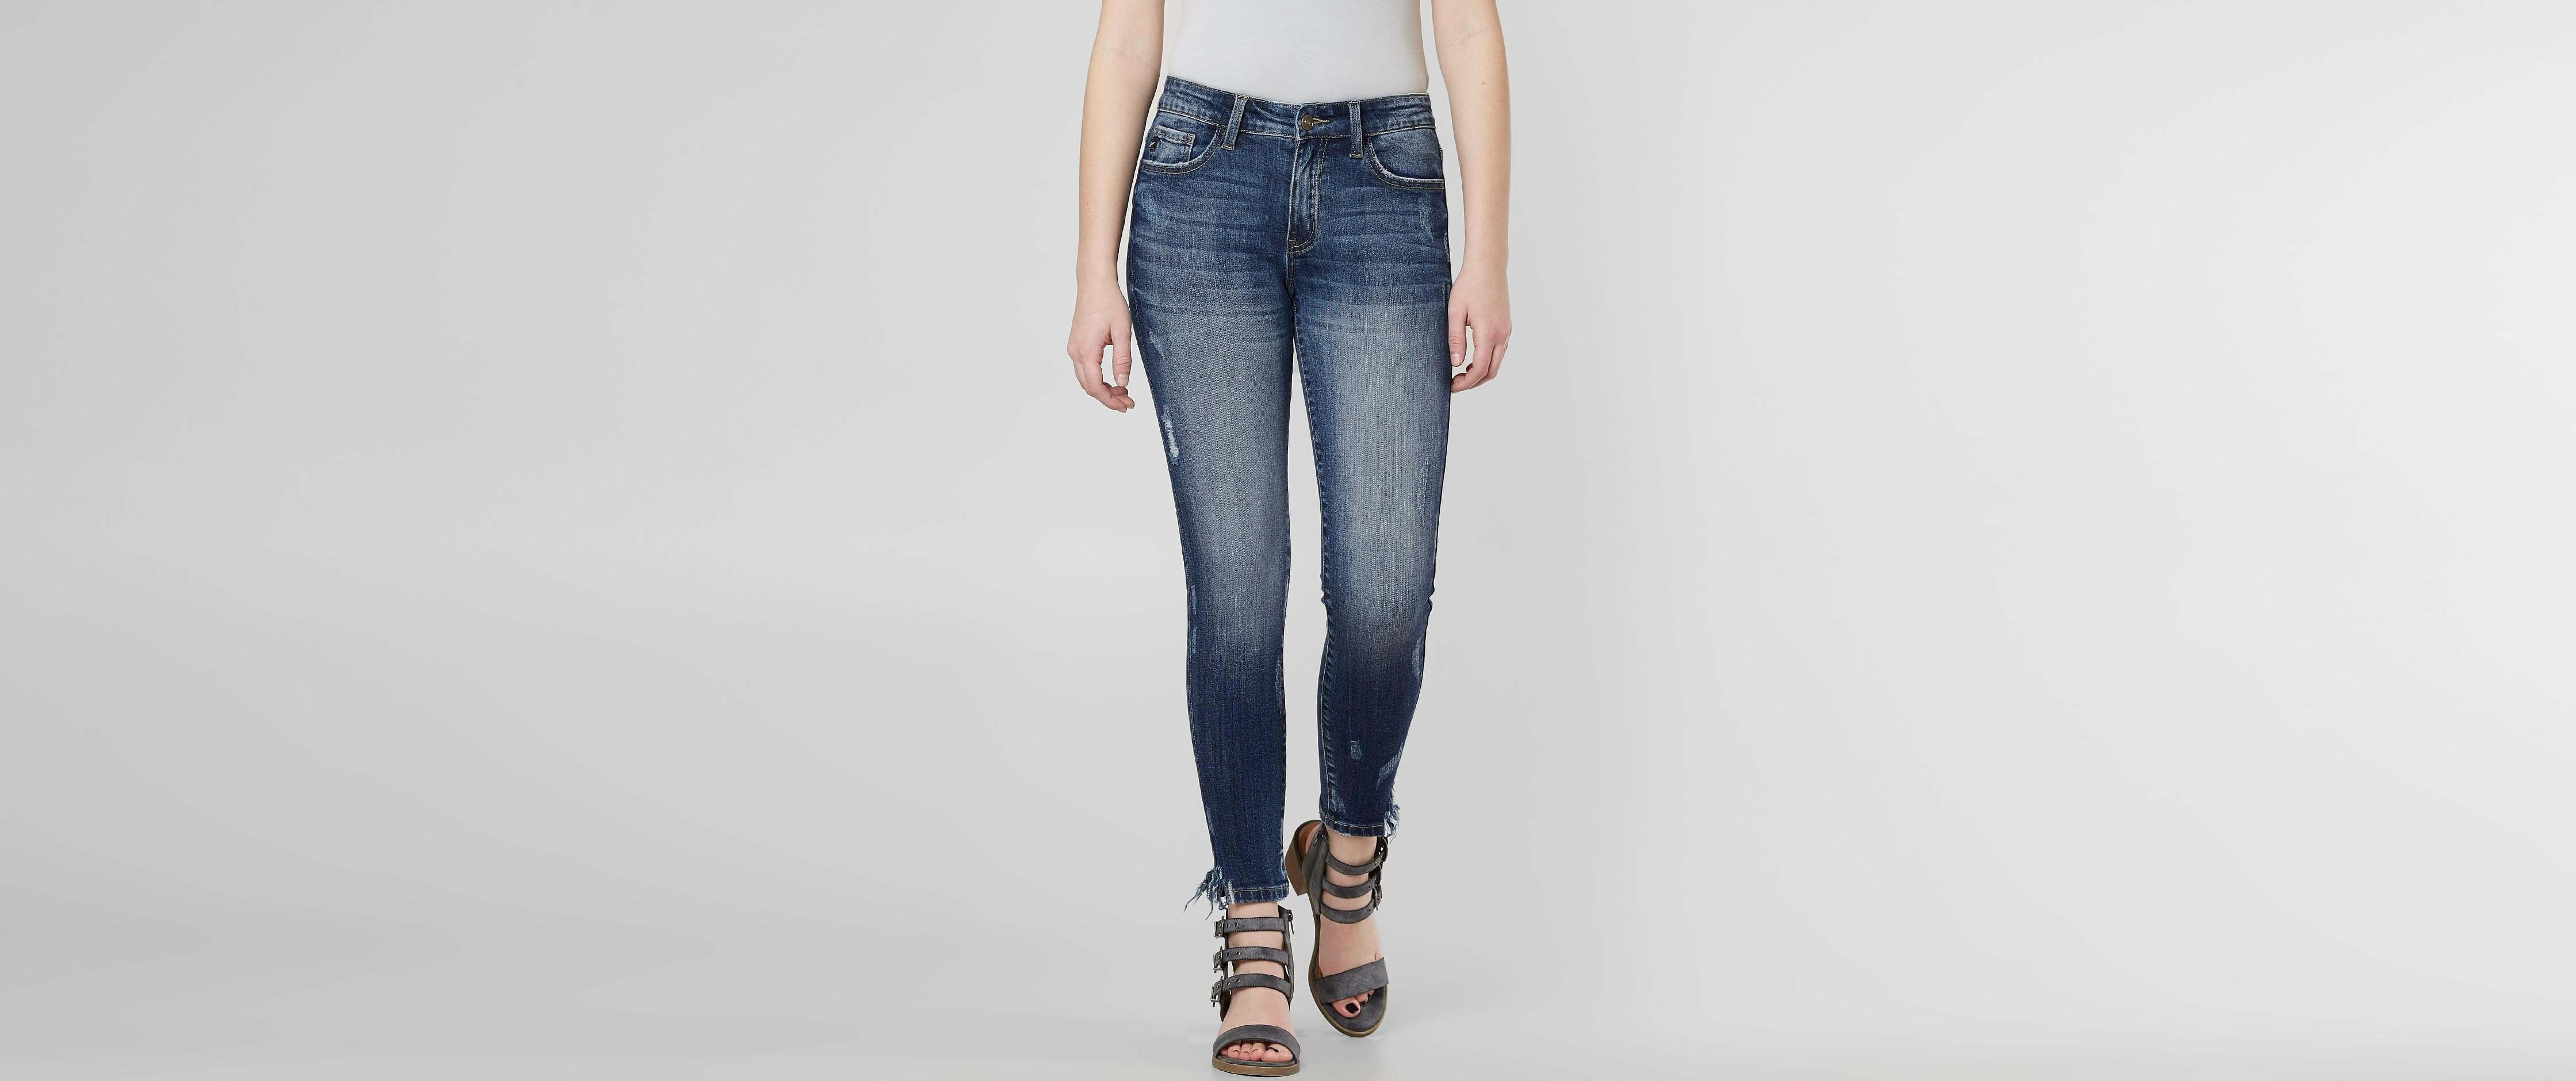 Top KanCan Mid-Rise Ankle Skinny Stretch Jean